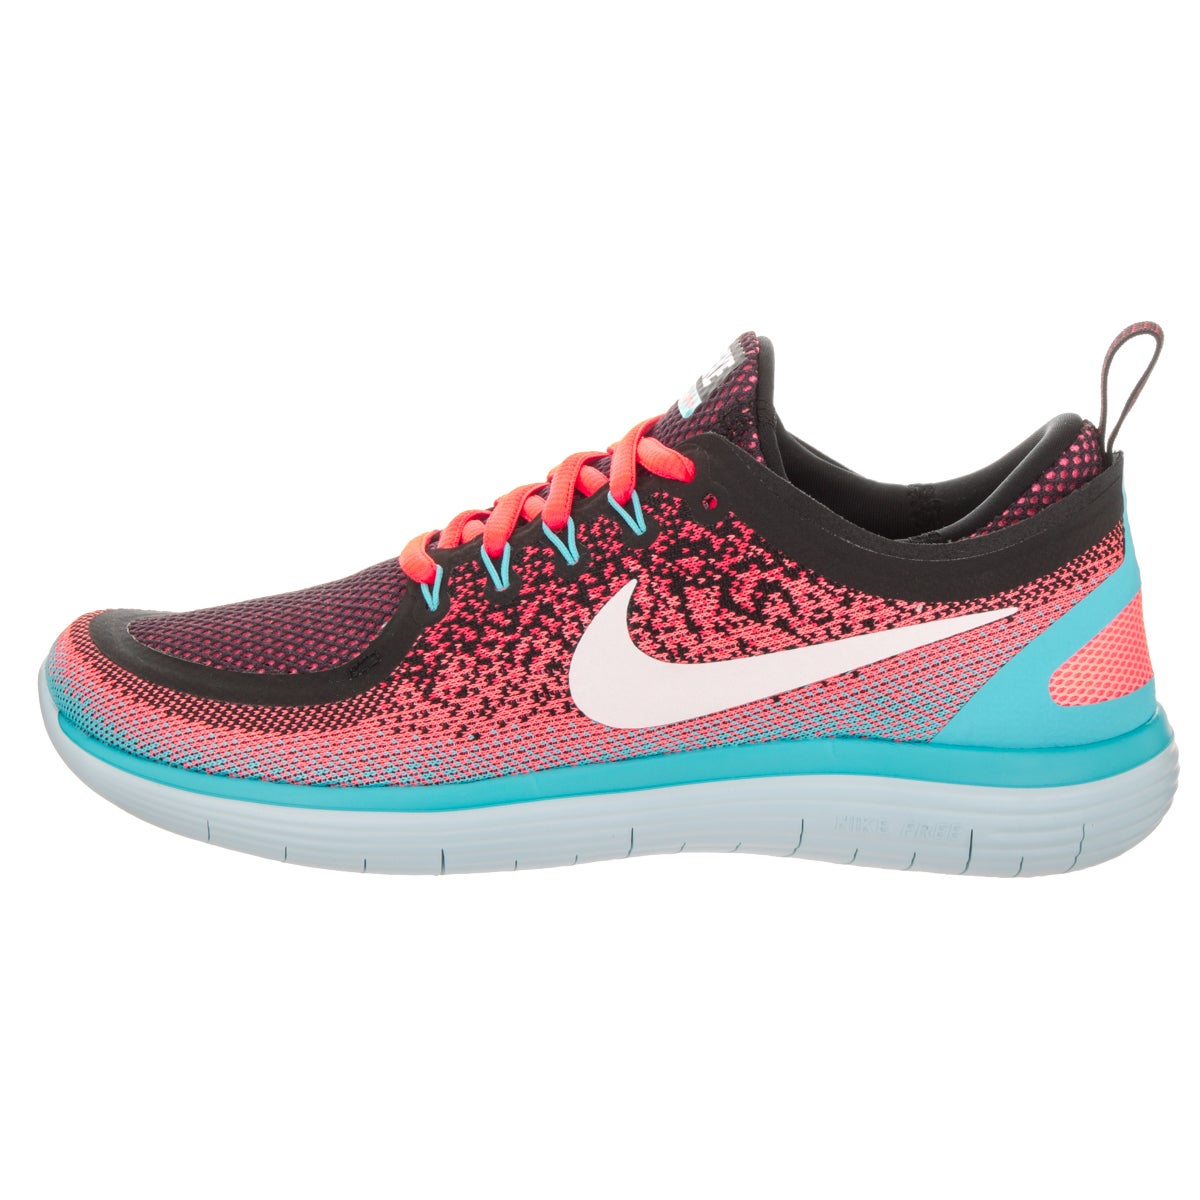 273630ed57d Shop Nike Women s Free RN Distance 2 Running Shoes - Free Shipping Today -  Overstock - 14163282